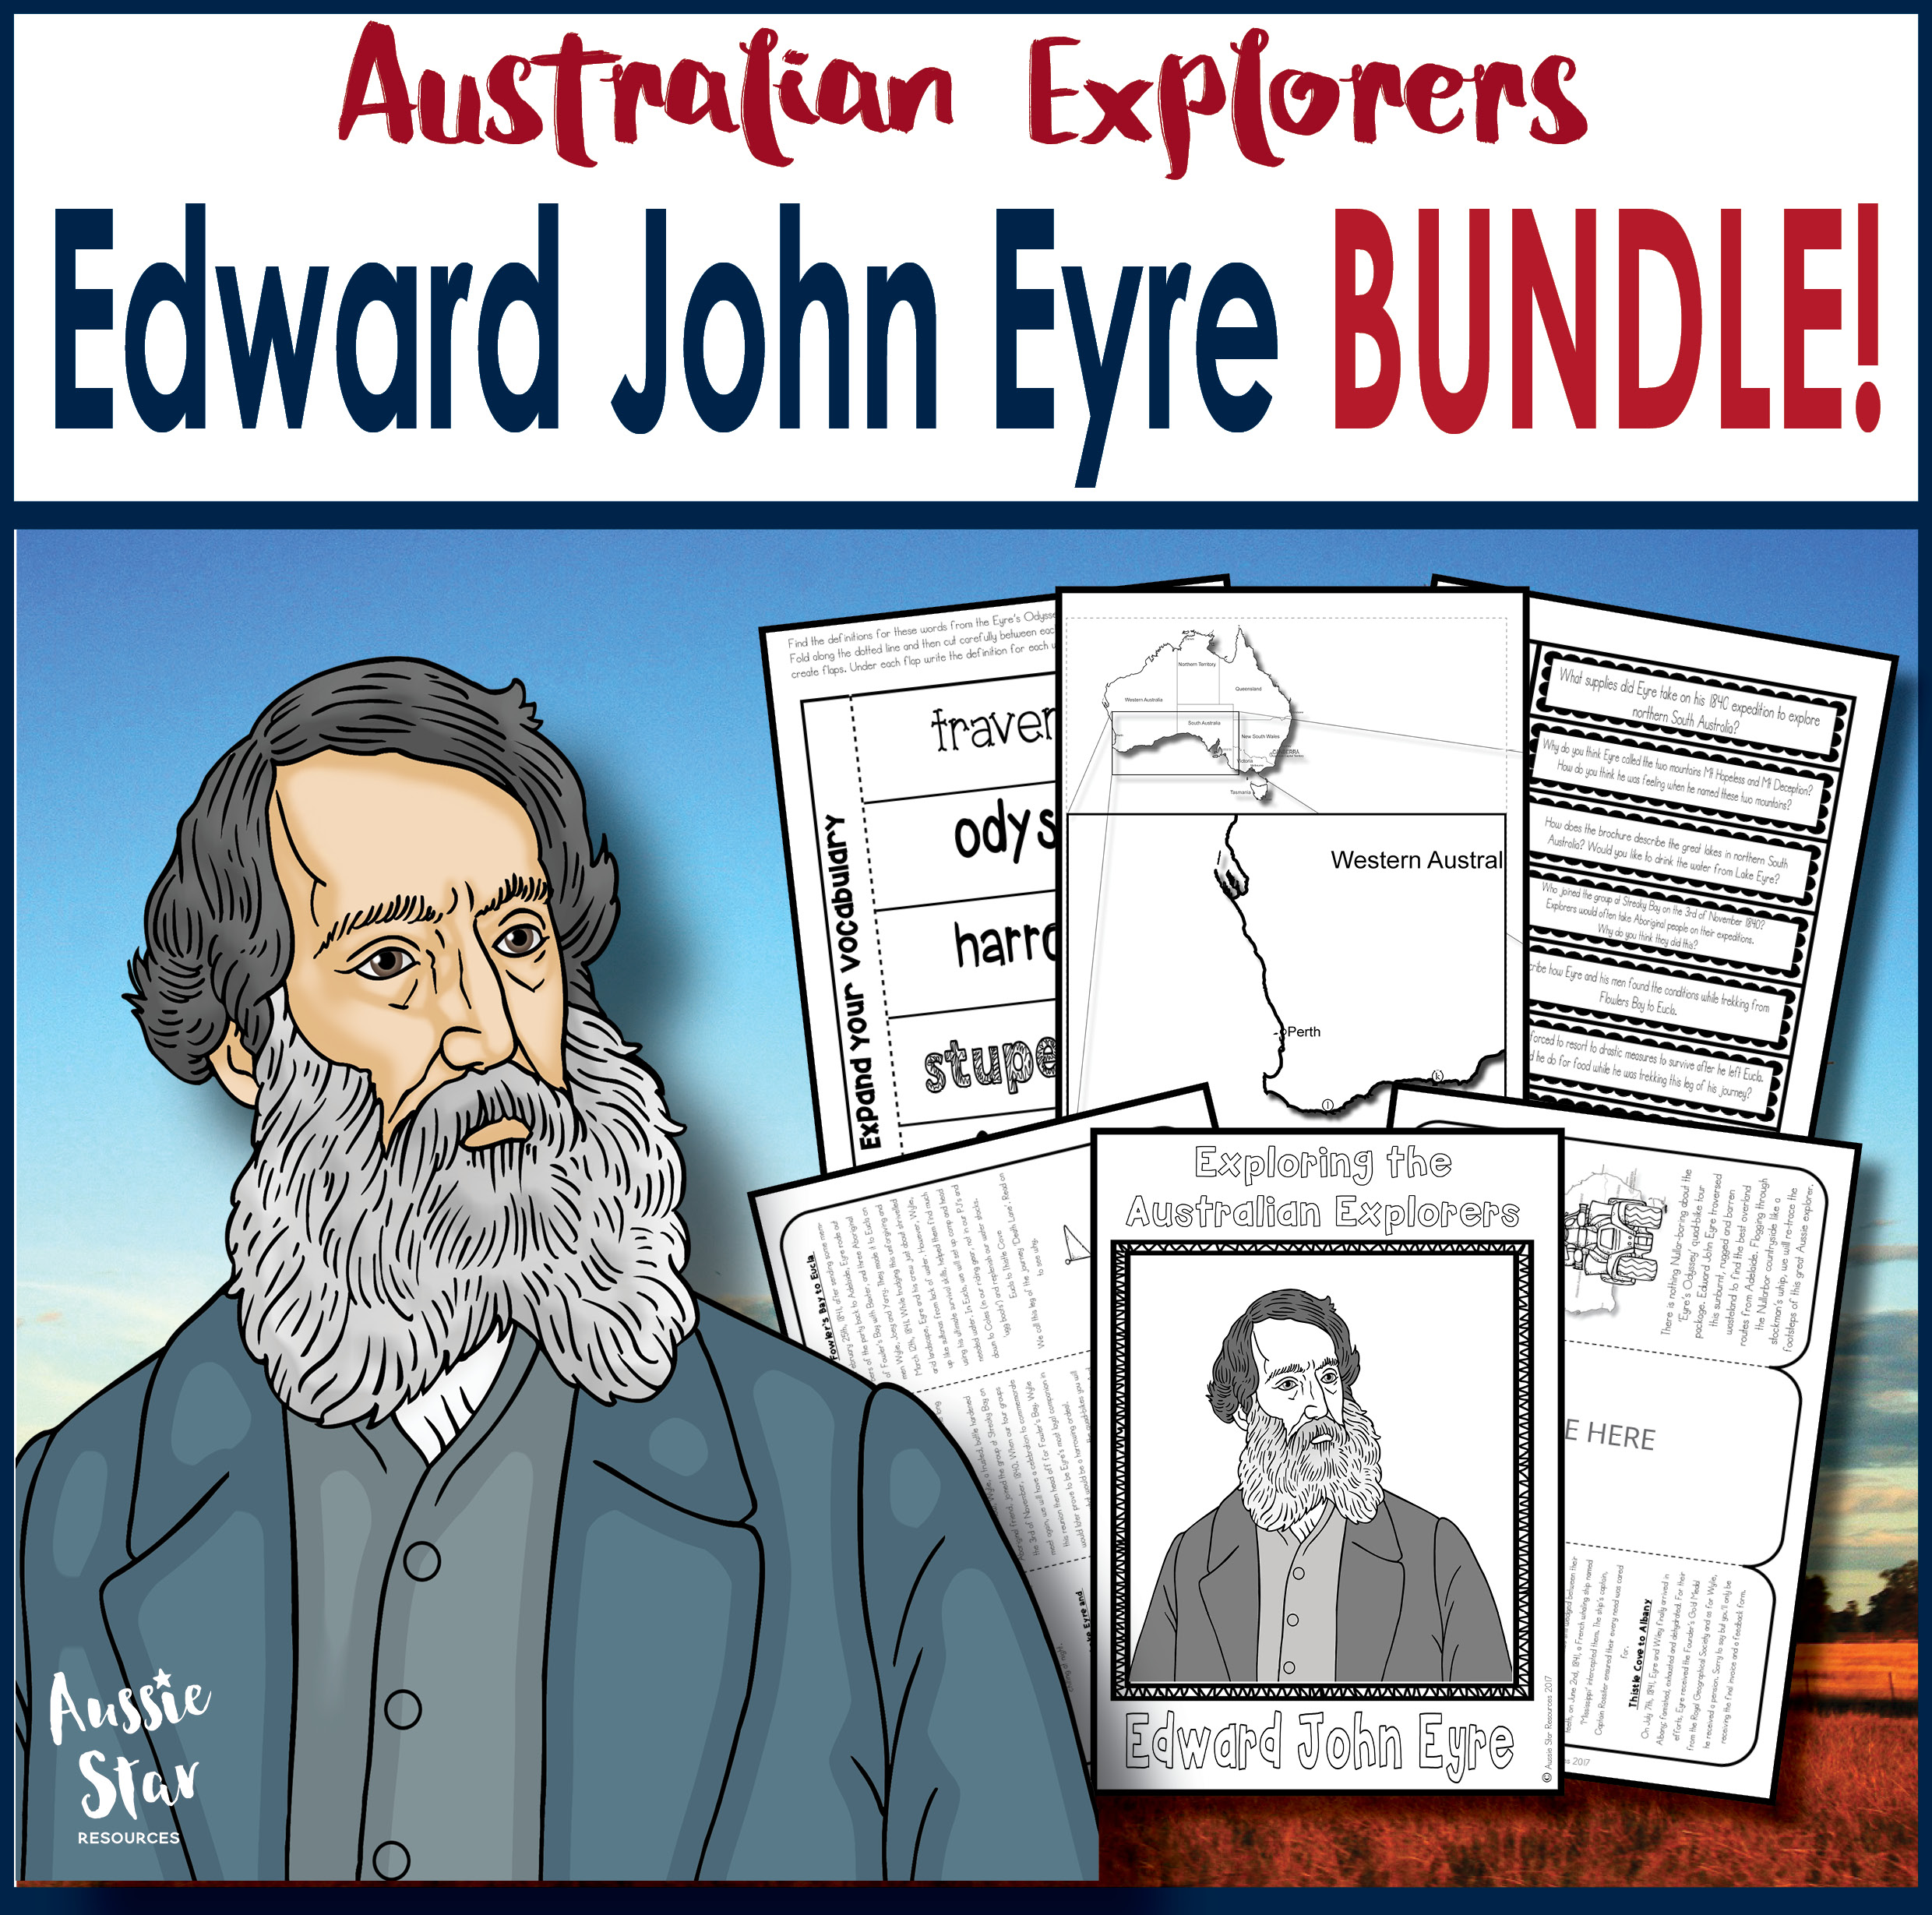 Edward John Eyre BUNDLE